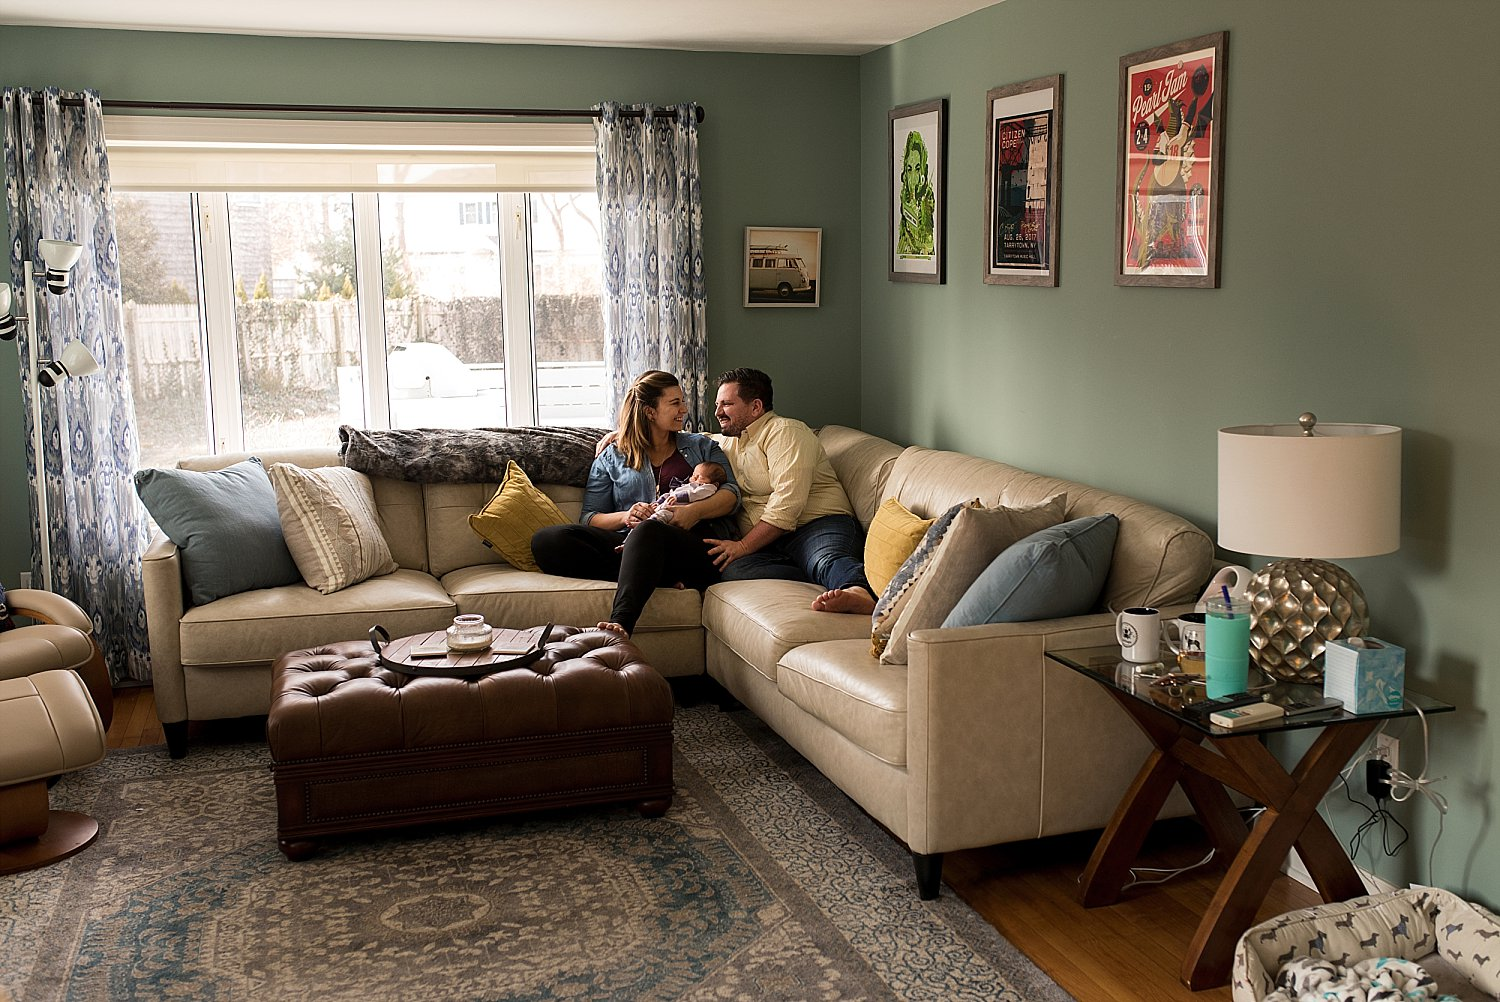 Mom and Dad posing on couch during connecticut newborn photo session